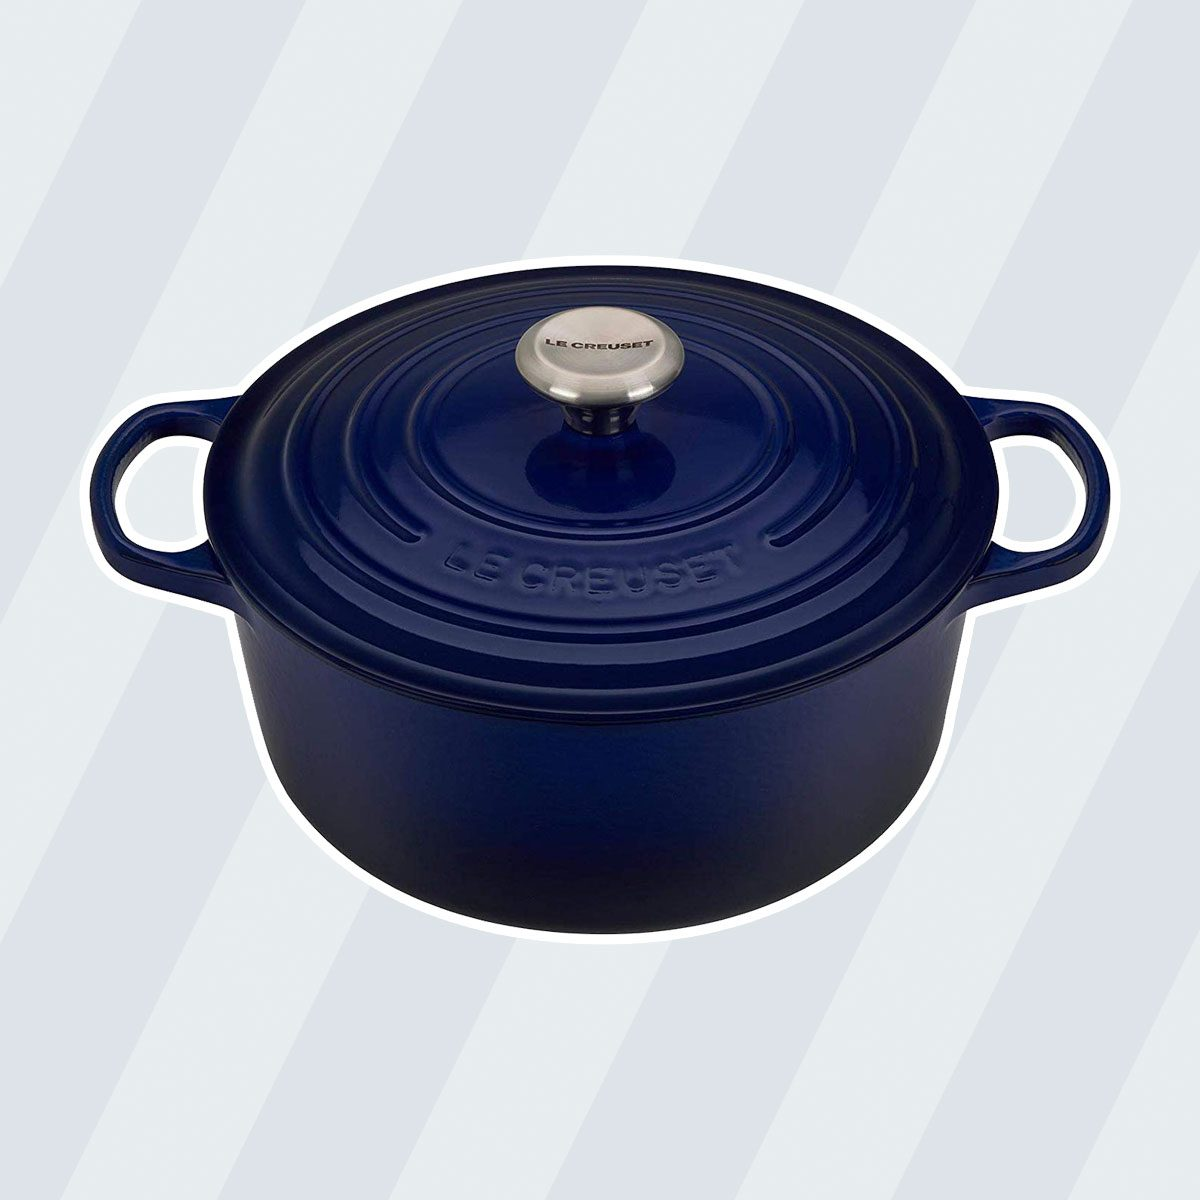 Every Dutch Oven We Love Right Now I Taste Of Home